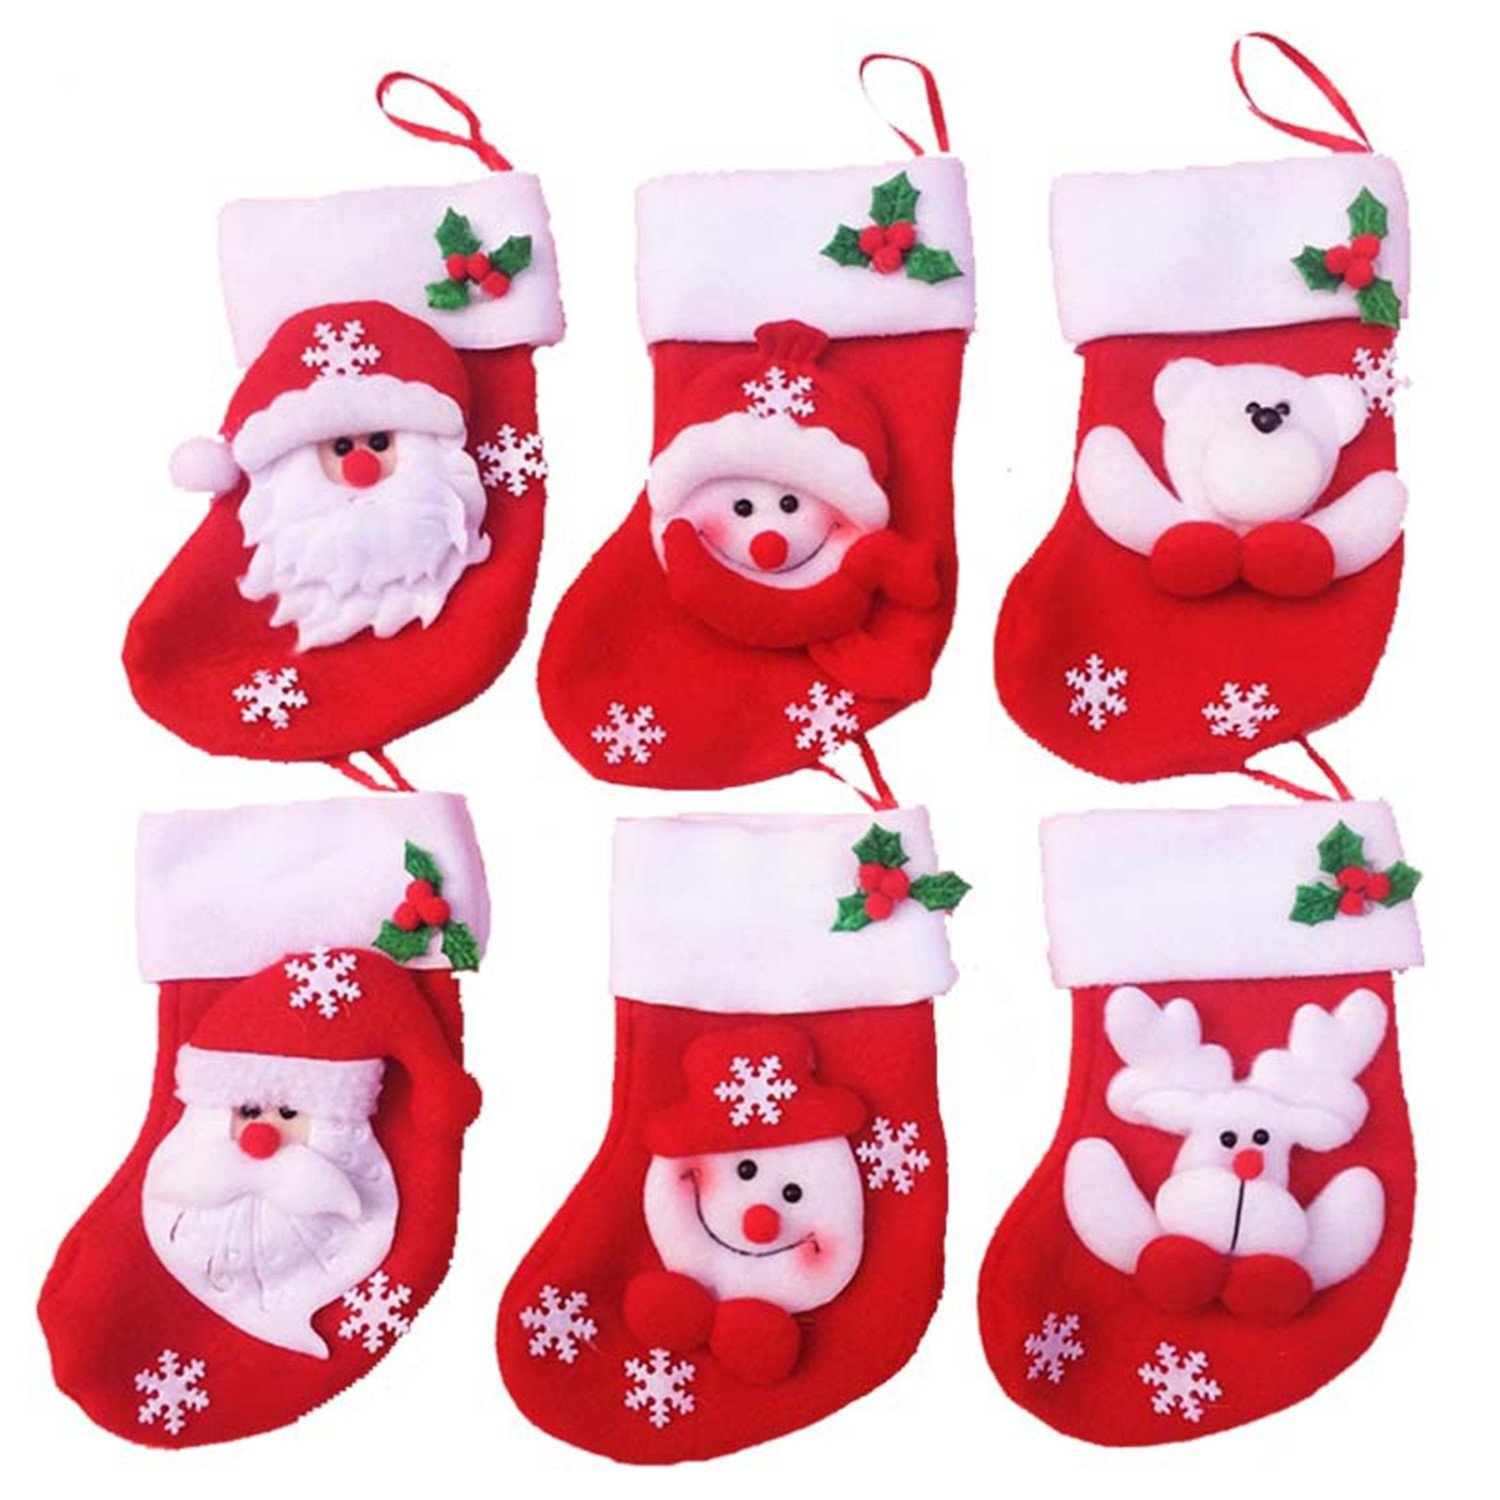 HMILYDYK 6Pcs Christmas Santa Stockings Decorations Hanging Candy Gift Bag Socks Kitchen Tableware Holders Set Cutlery Bags for Home Garden Decor